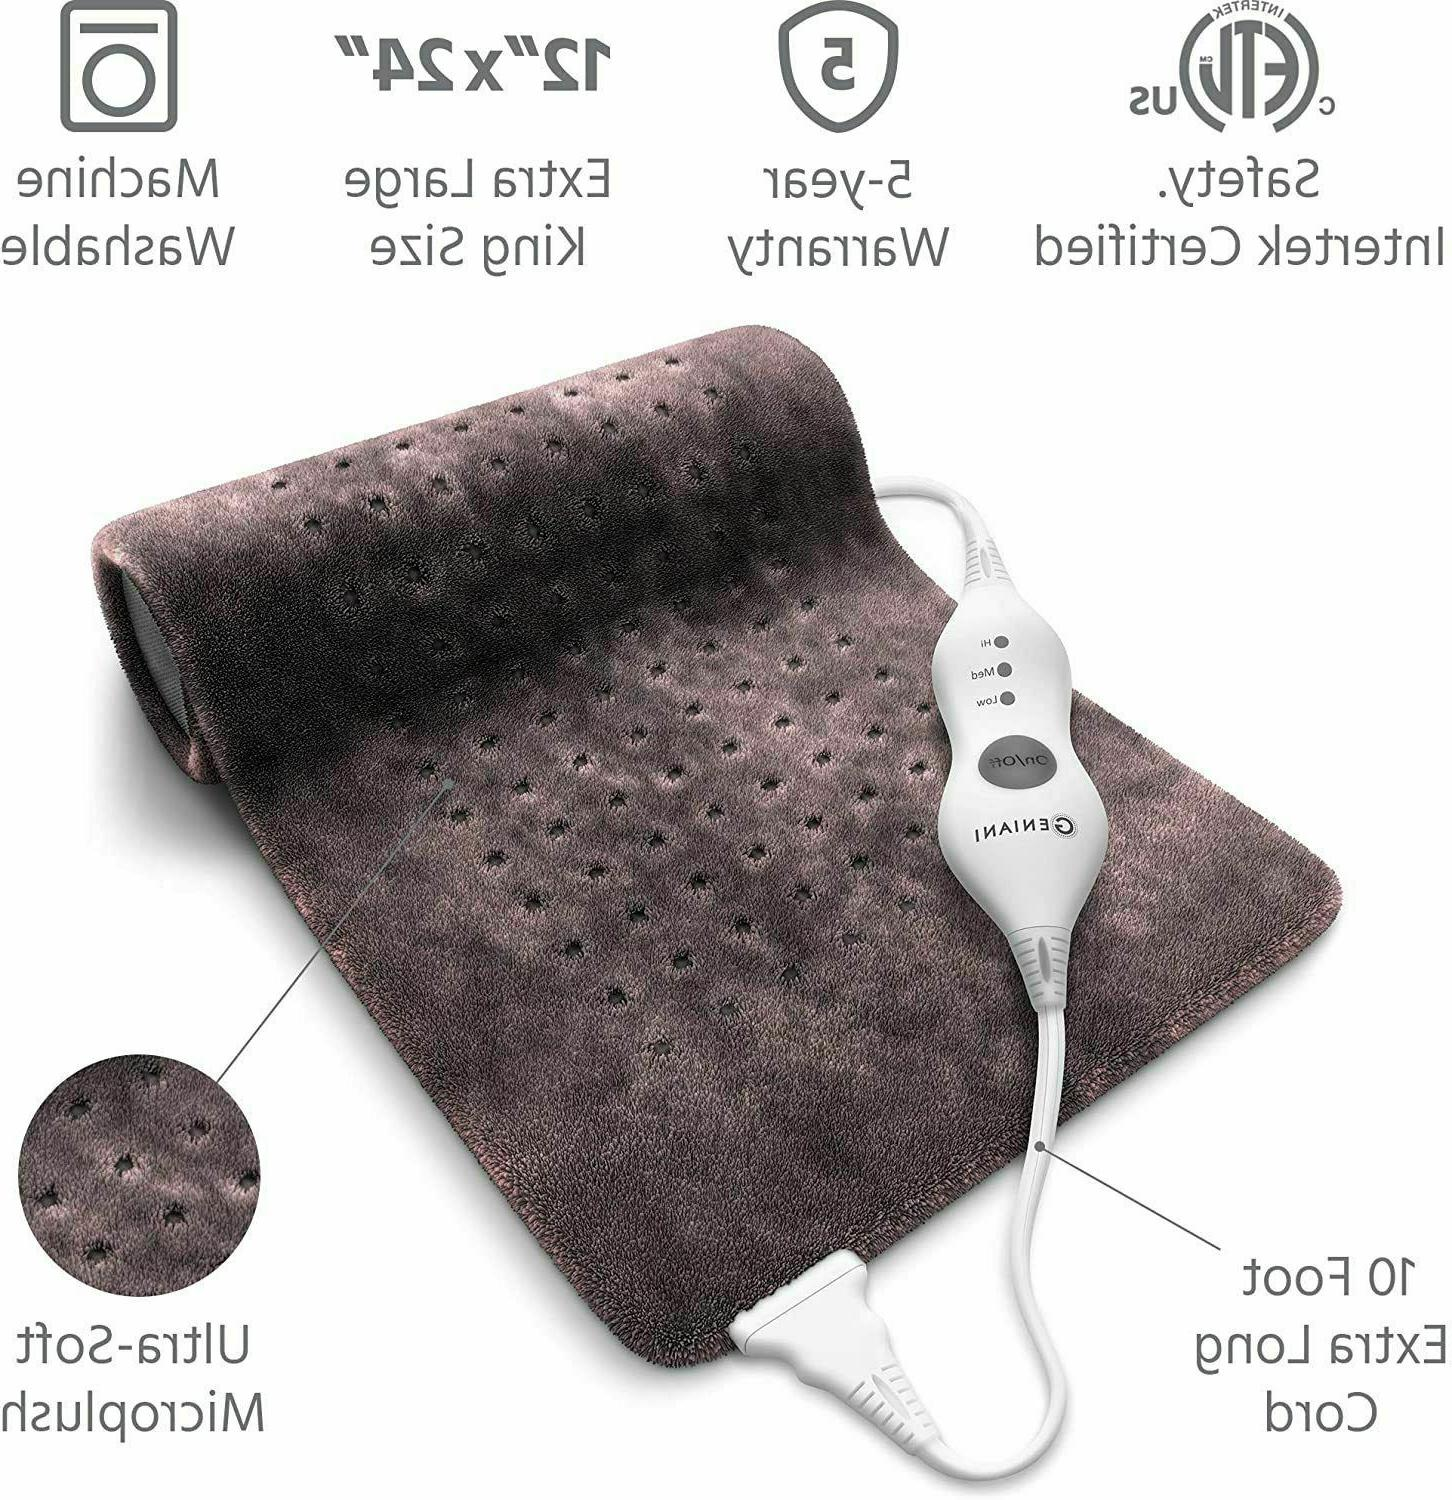 XL Electric Heating Pad - Moist and Neck/Back/Shoulders Heating Pad